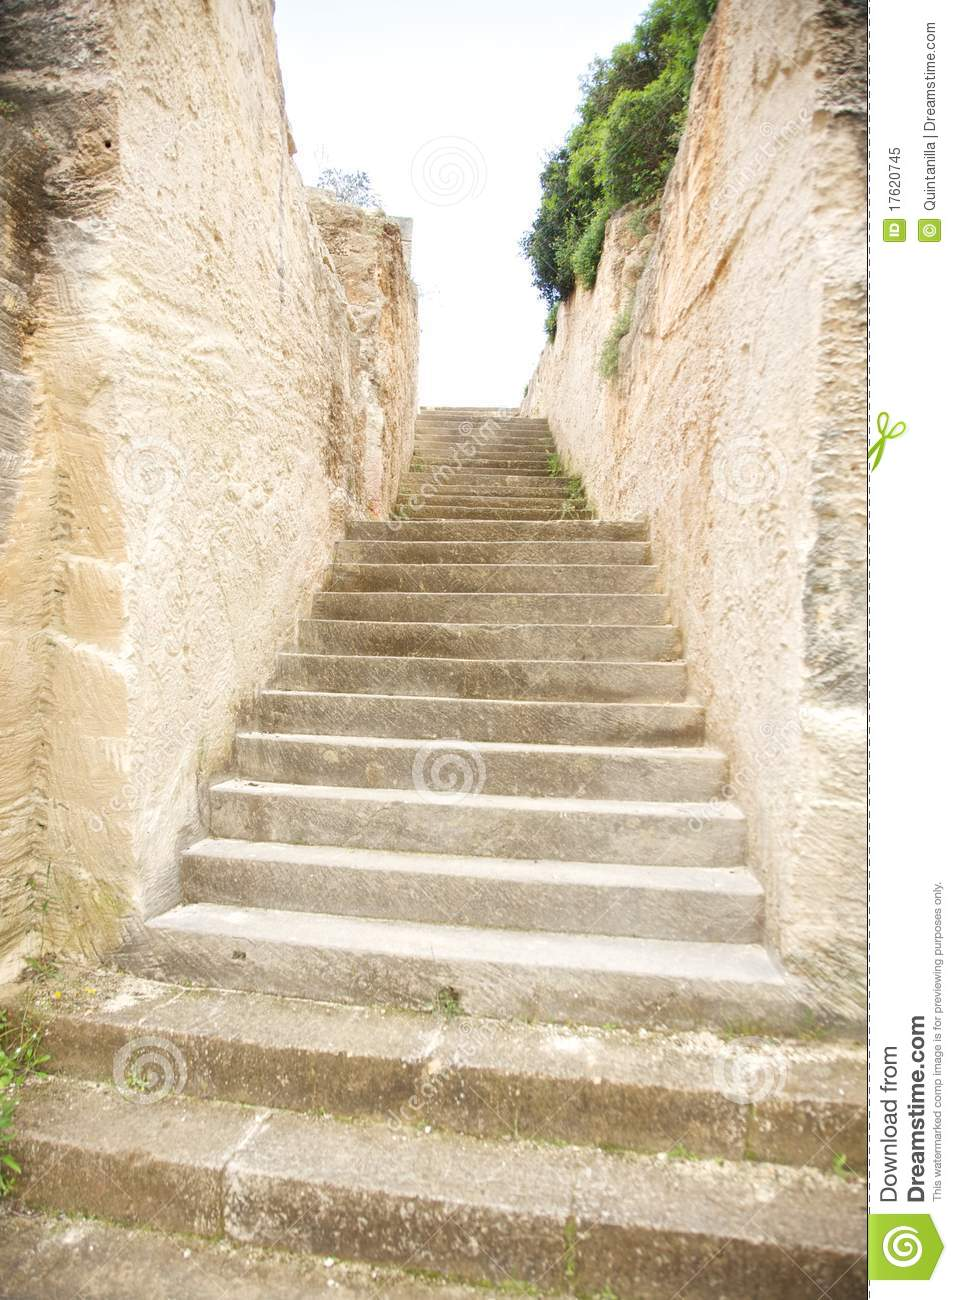 Carved Stone Steps : Carved stone stairs royalty free stock photo image